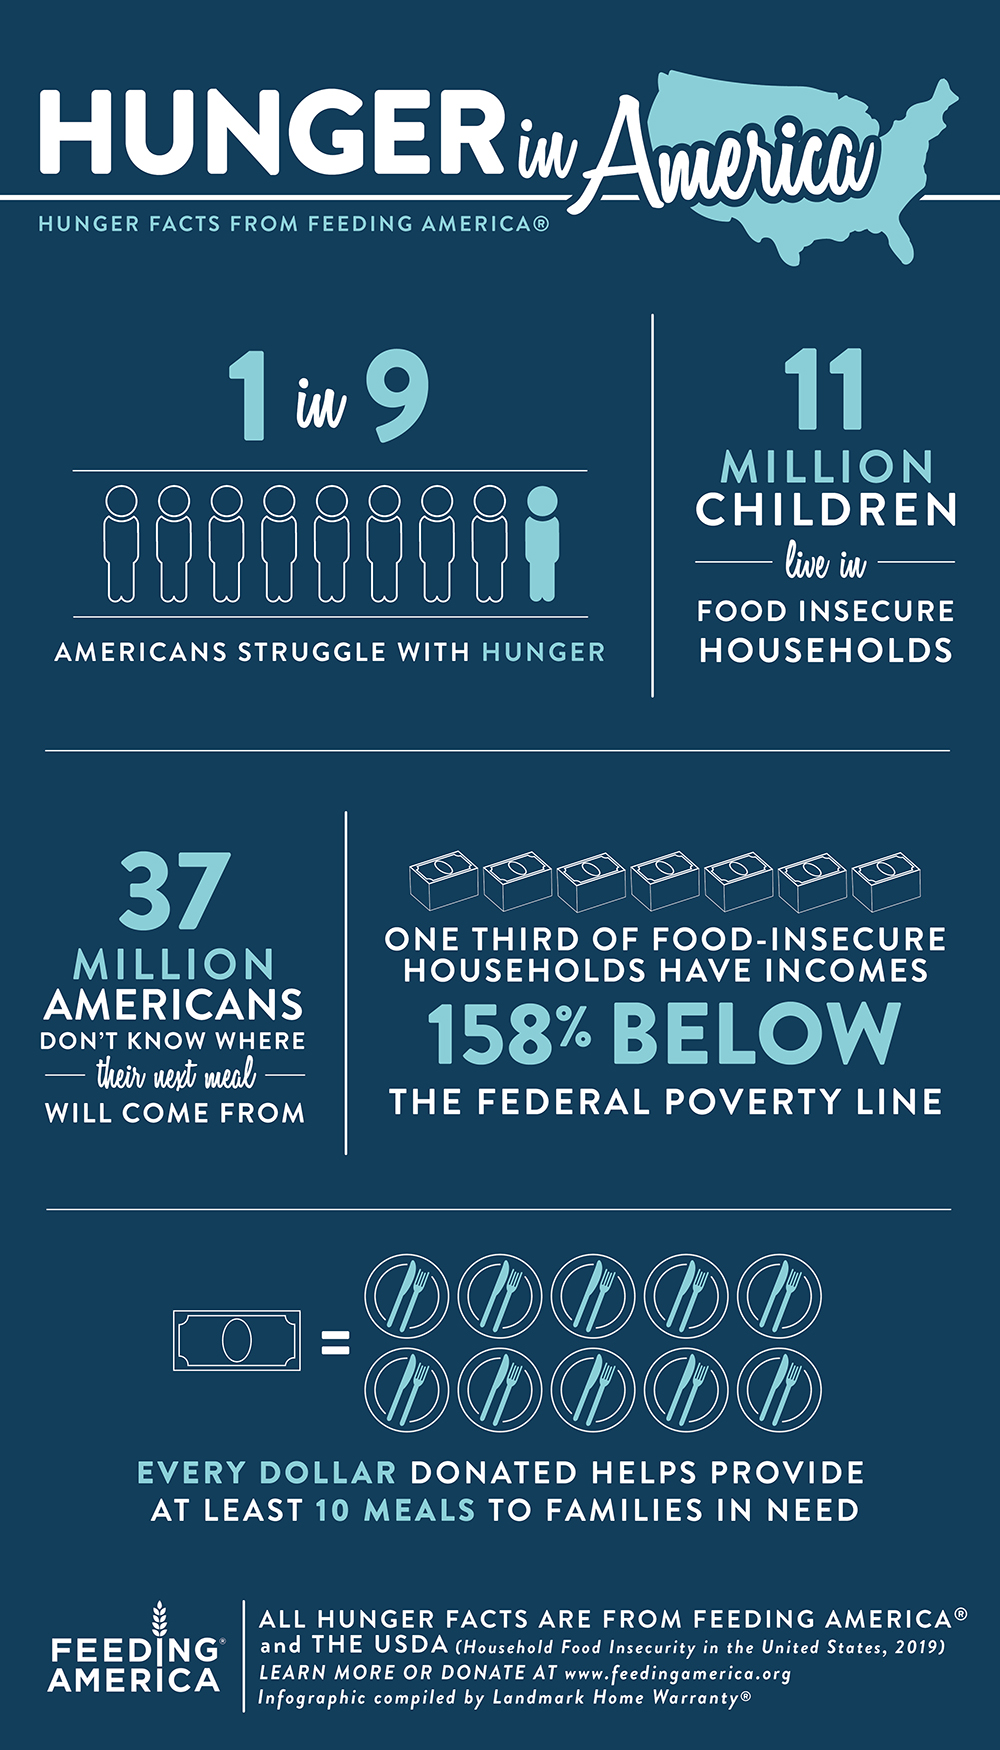 Hunger in America Infographic: Facts and Figures from the USDA and Feeding America